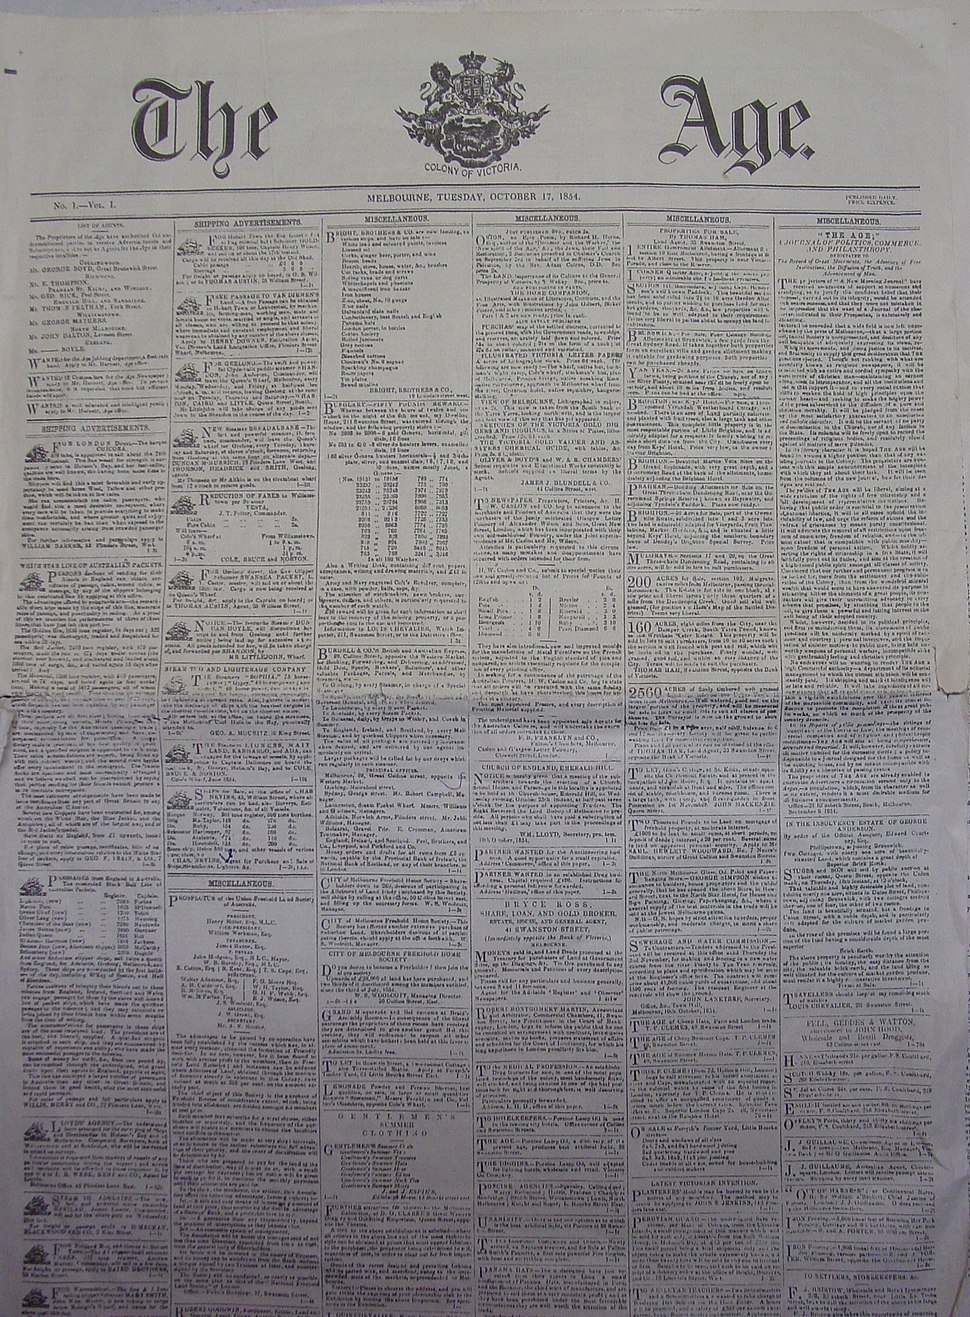 The Age first edition, Melbourne Museum